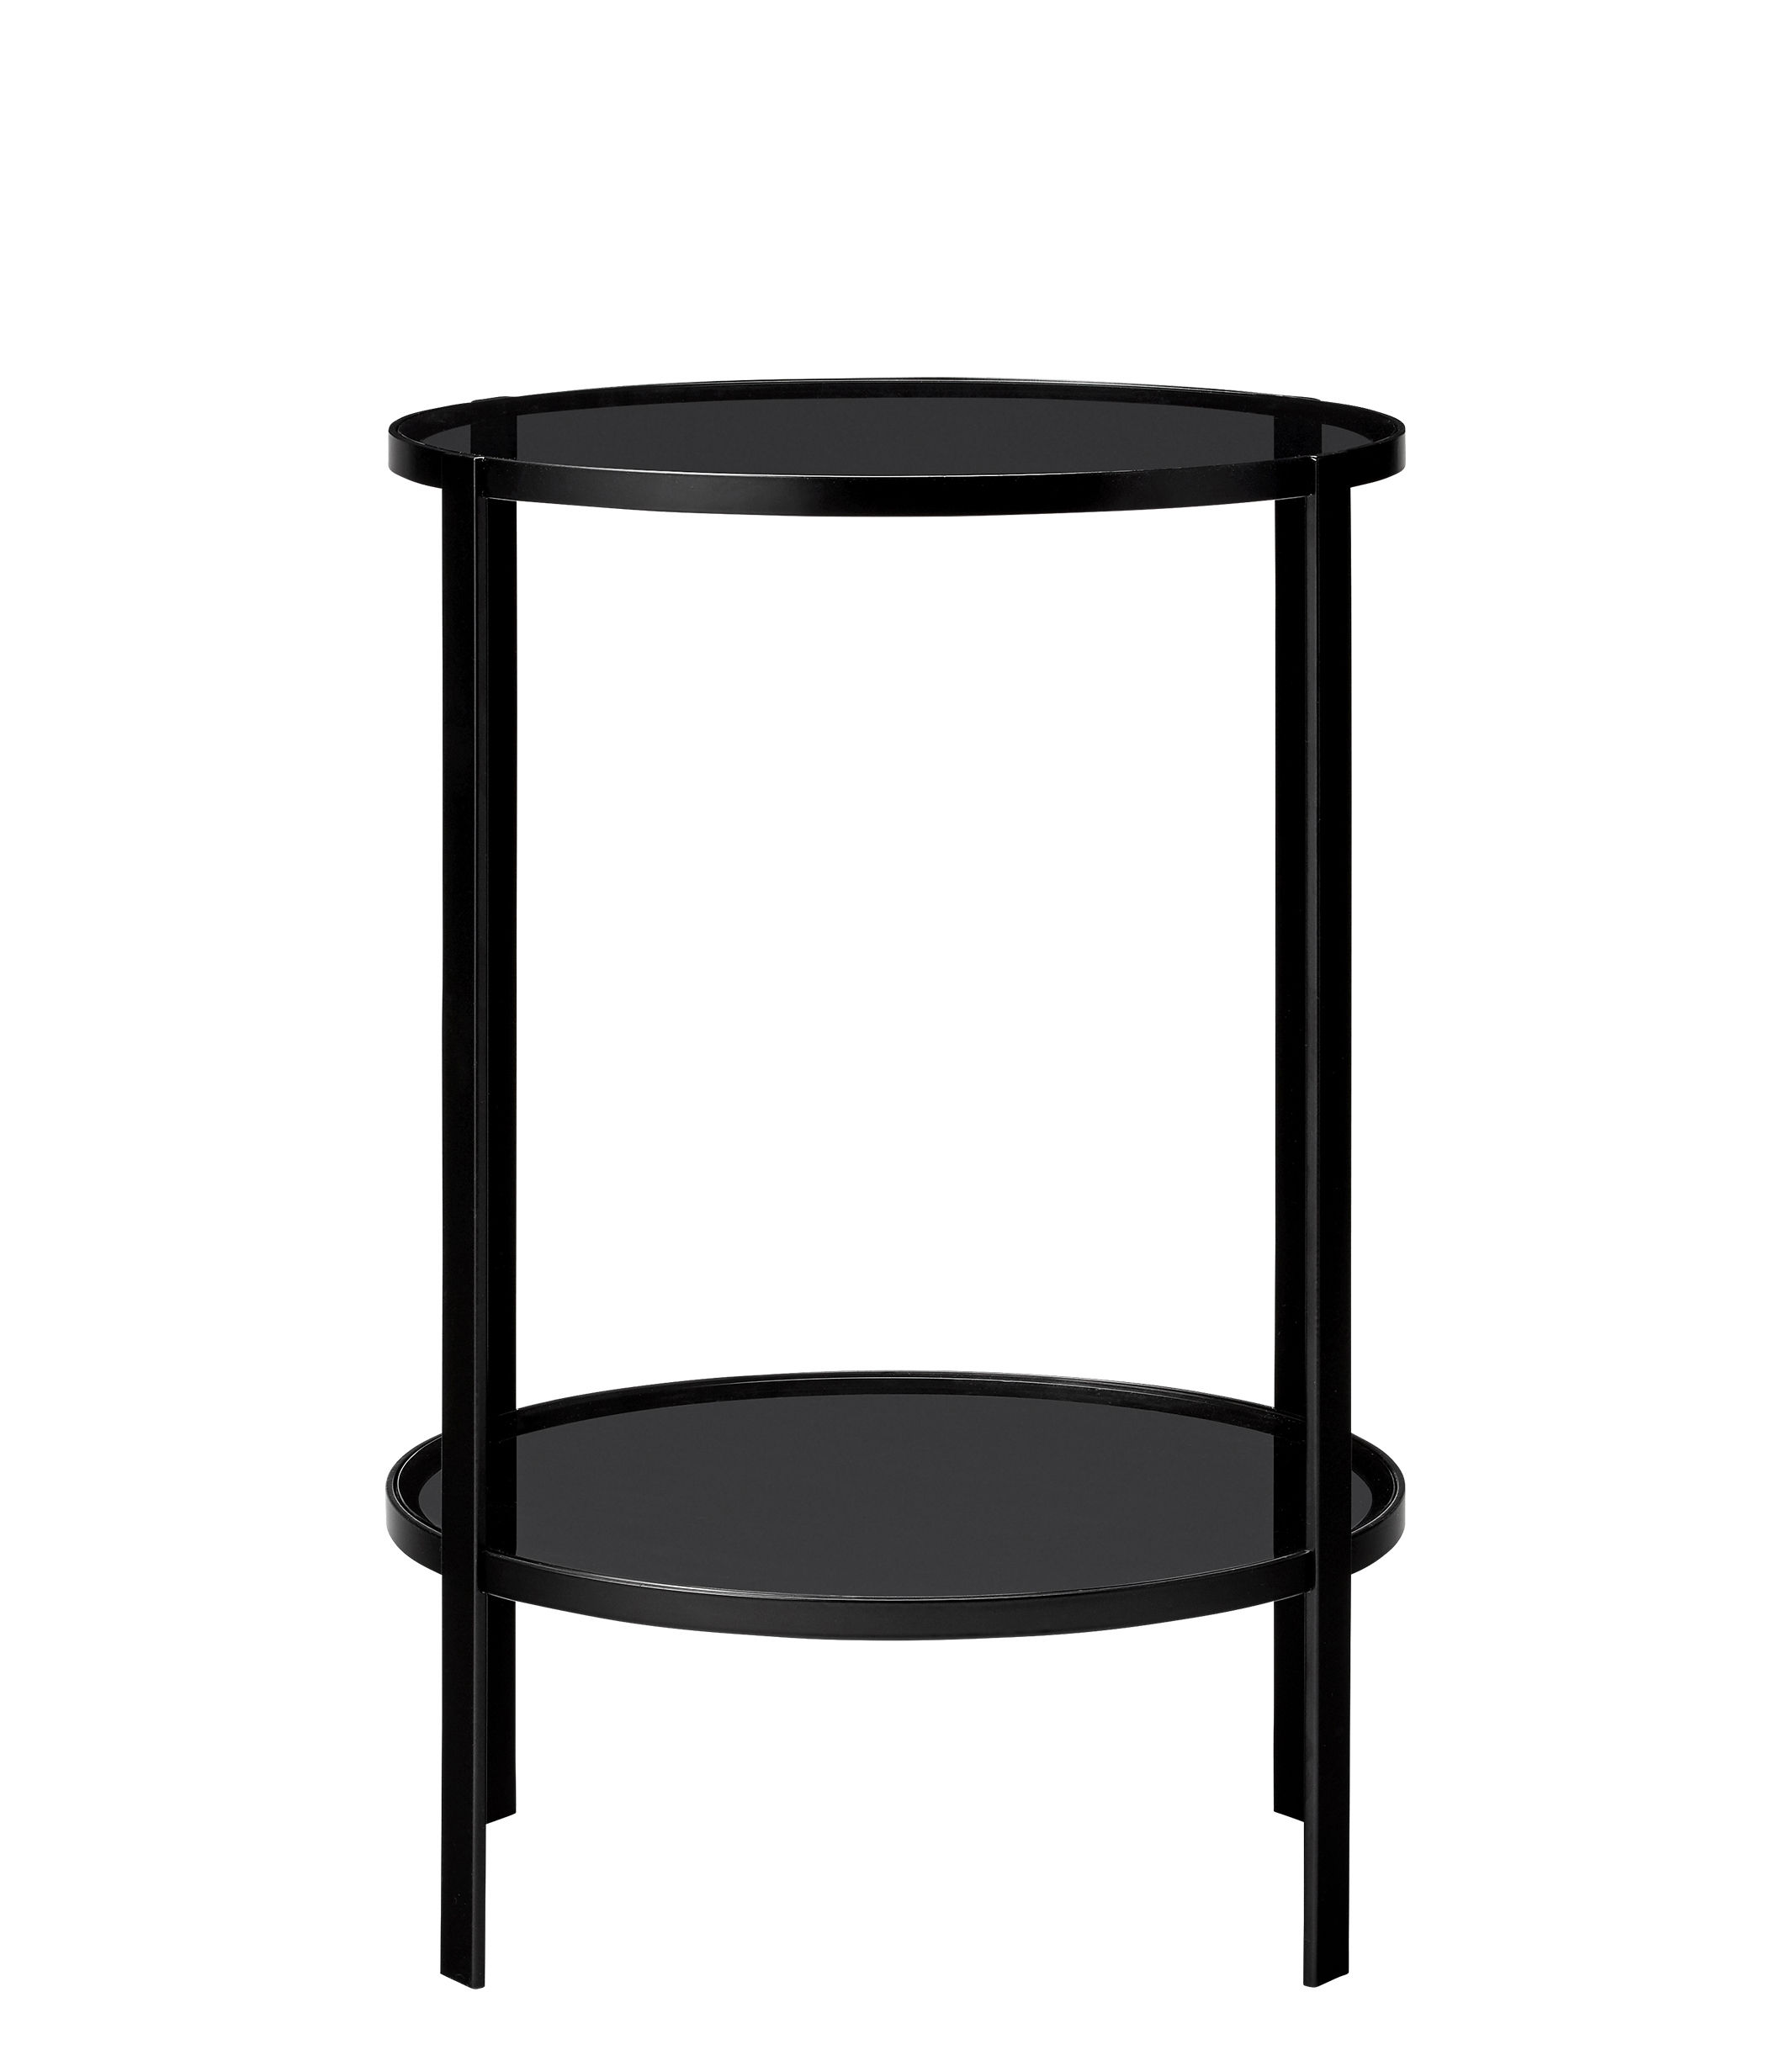 Table Metal Et Verre Fumi End Table Ø 40 X H 58 Cm By Aytm